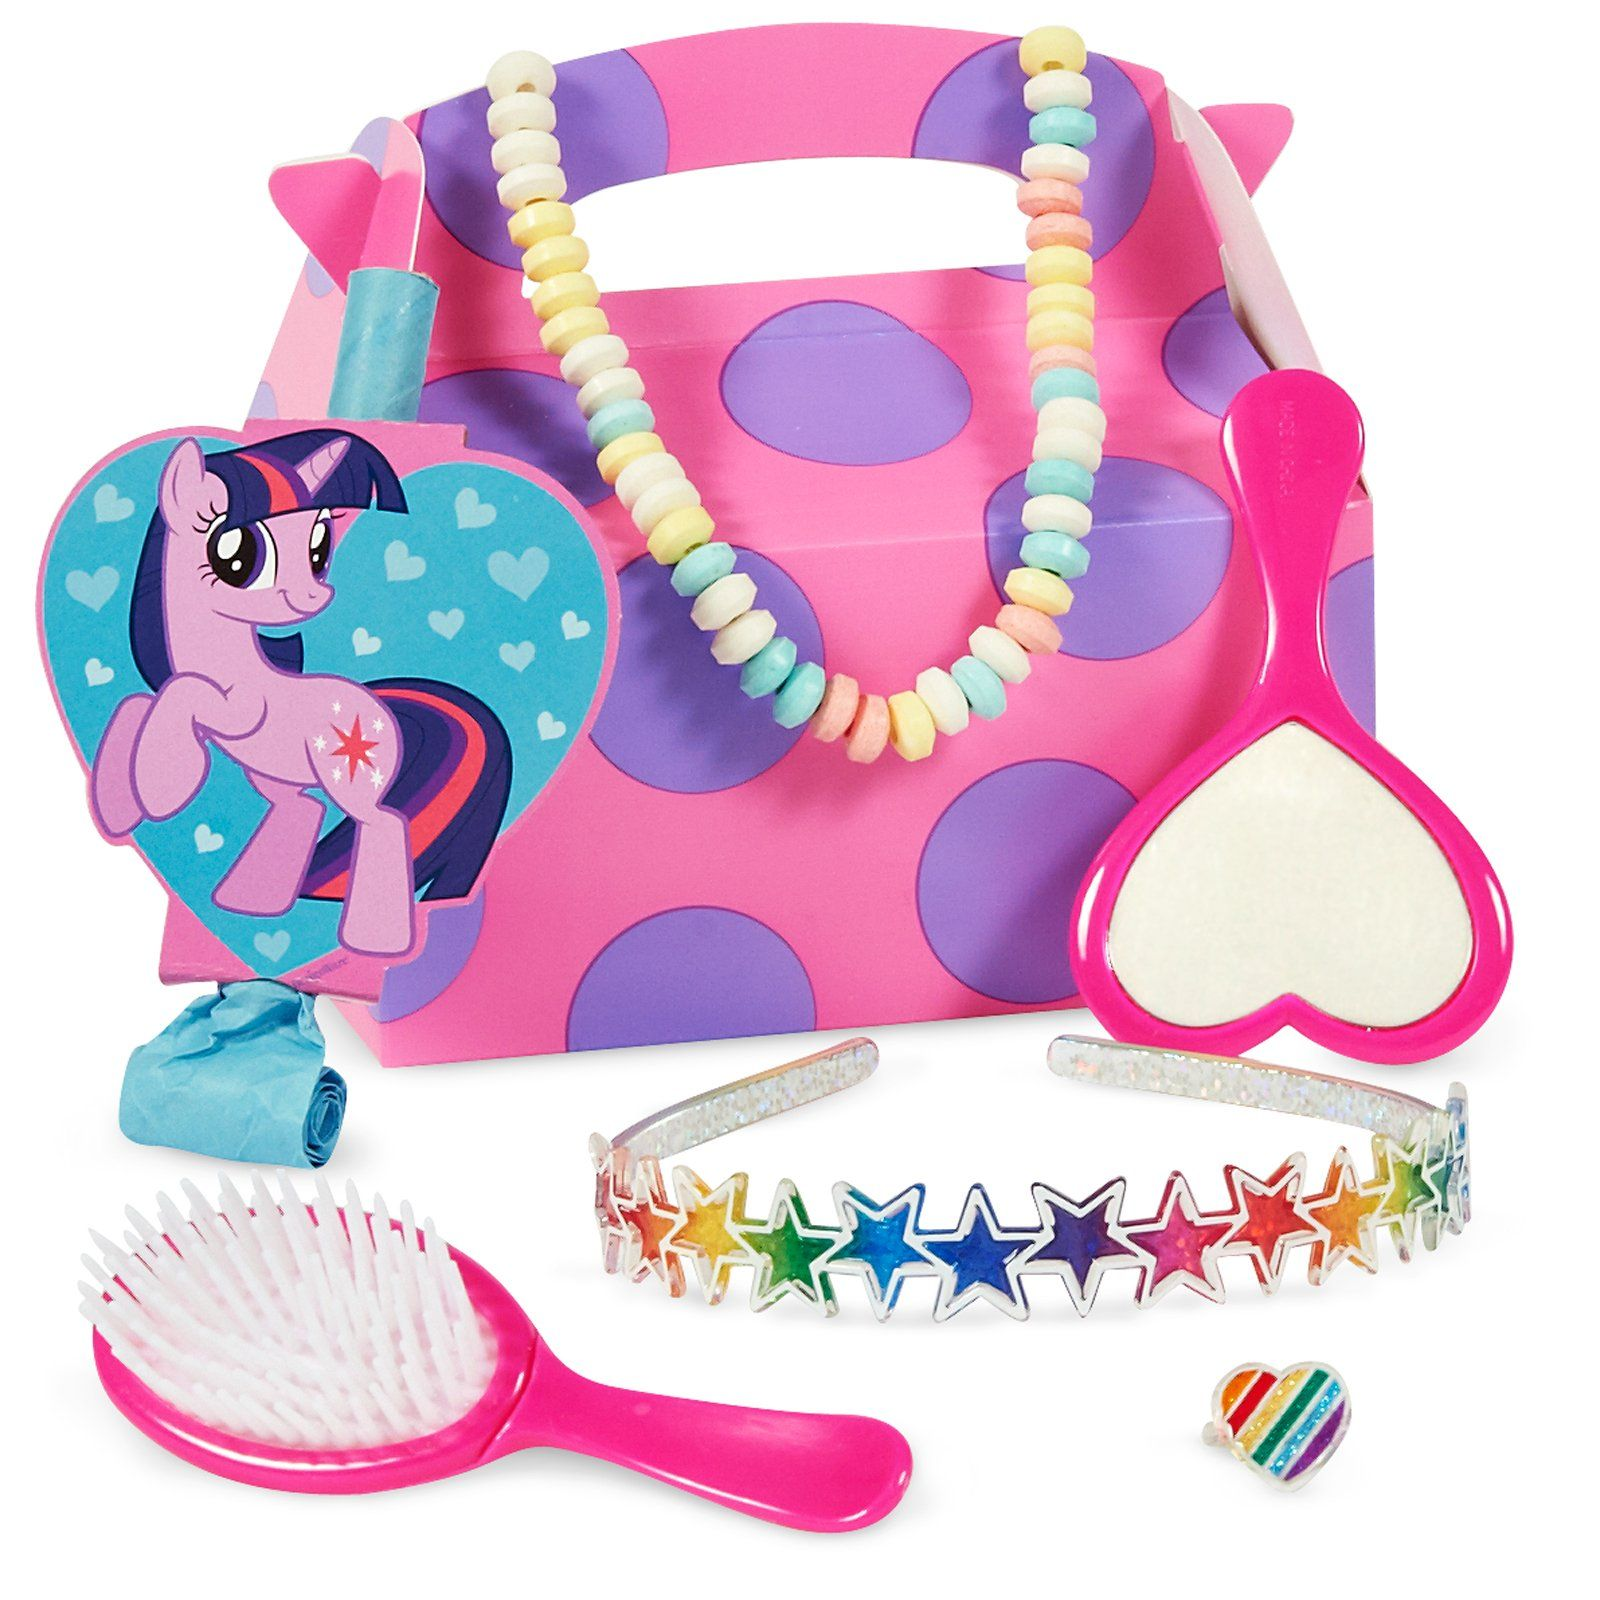 My Little Pony Friendship Magic Party Favor Box Lydia S 8th